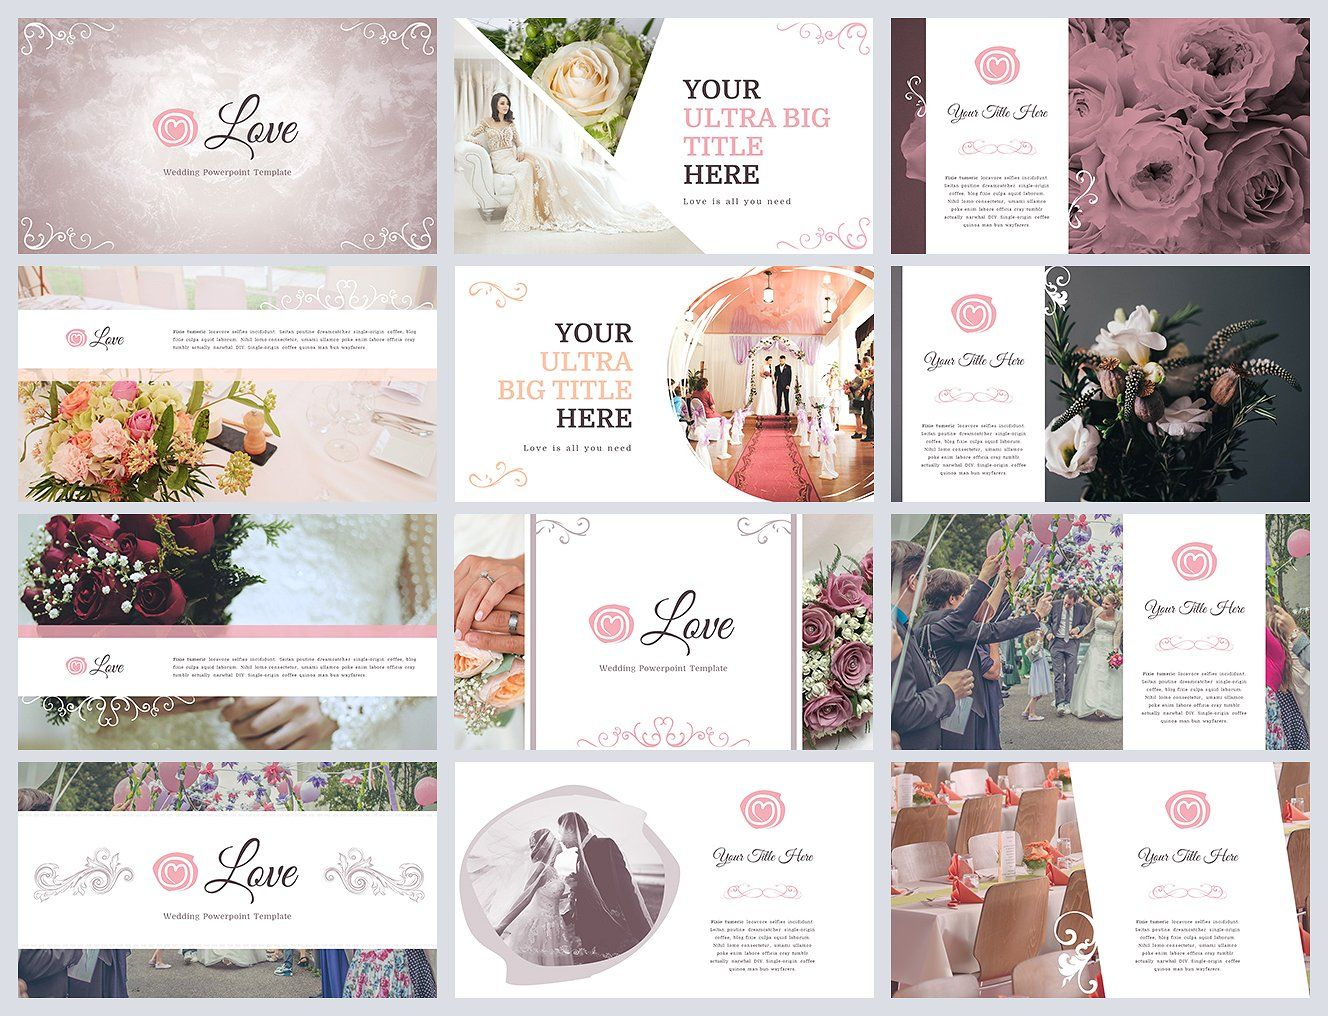 Love Wedding Powerpoint Template By Reshapely On